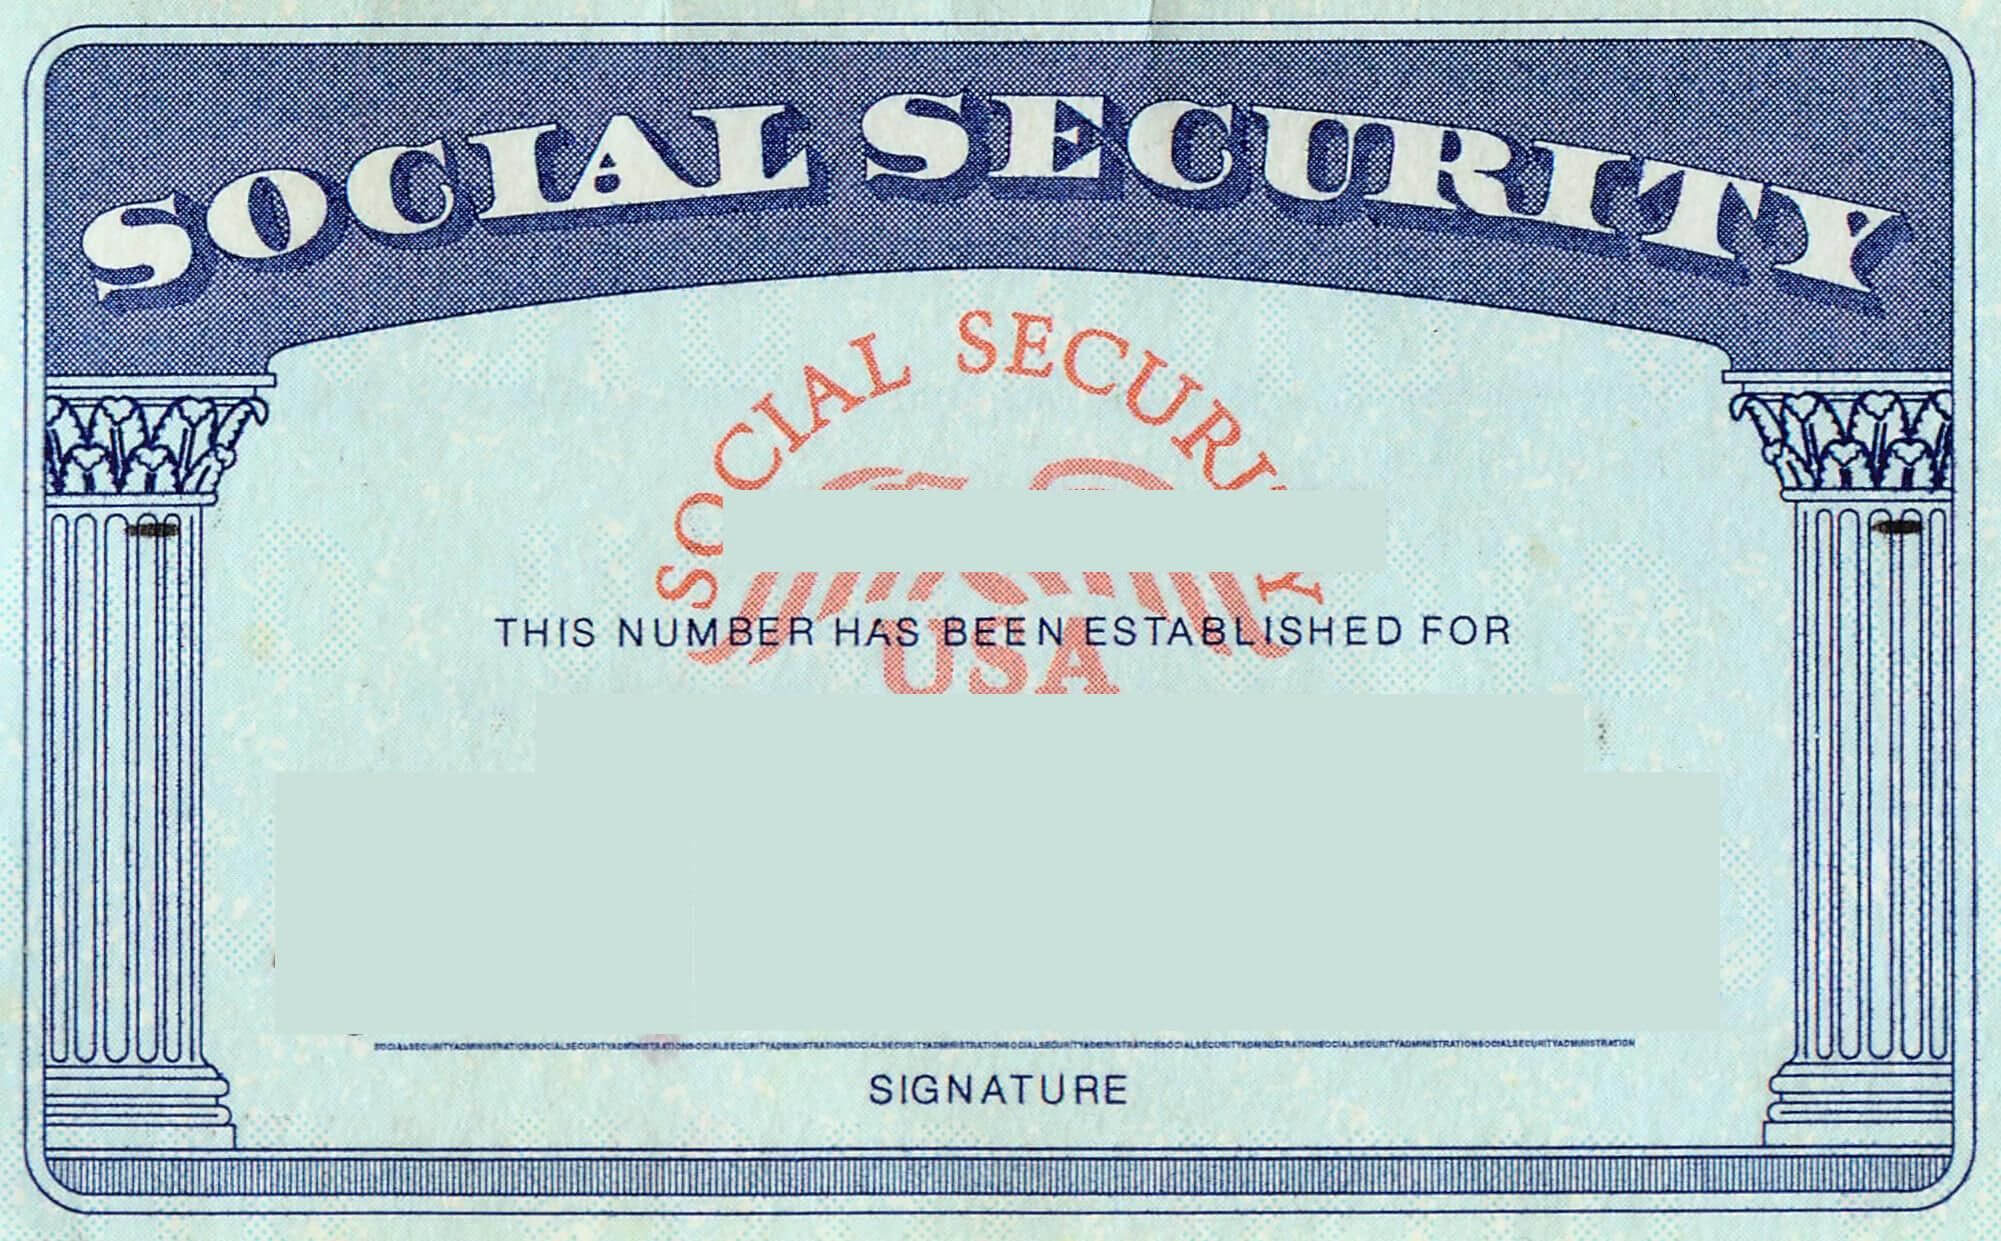 Blank Social Security Card Template | Social Security Card Inside Blank Social Security Card Template Download